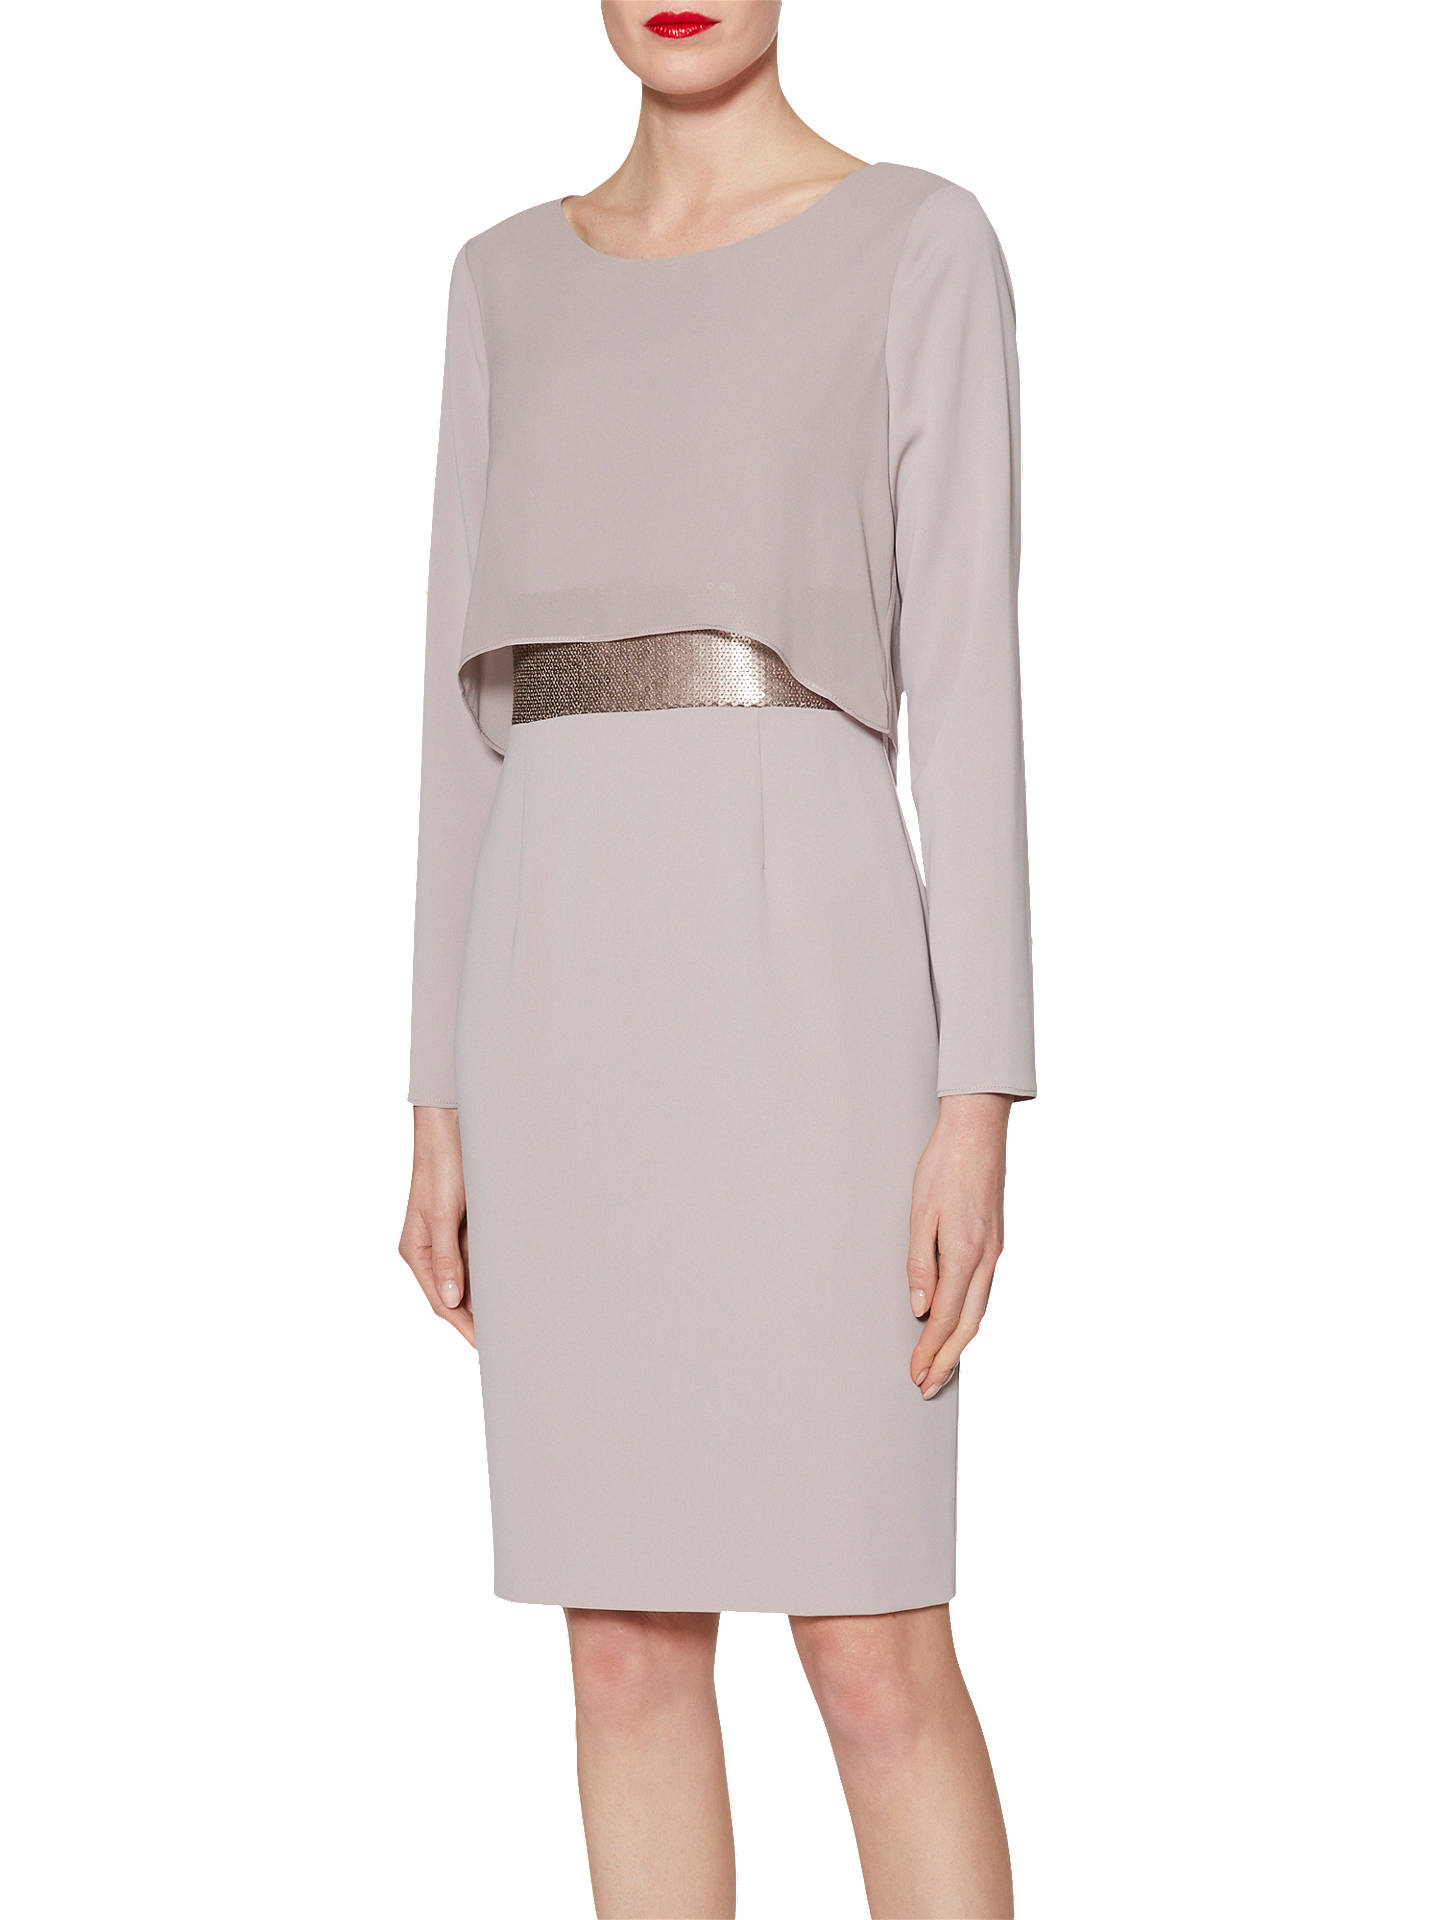 Buy Gina Bacconi Paula Sequin Waist Dress, Beige, 8 Online at johnlewis.com